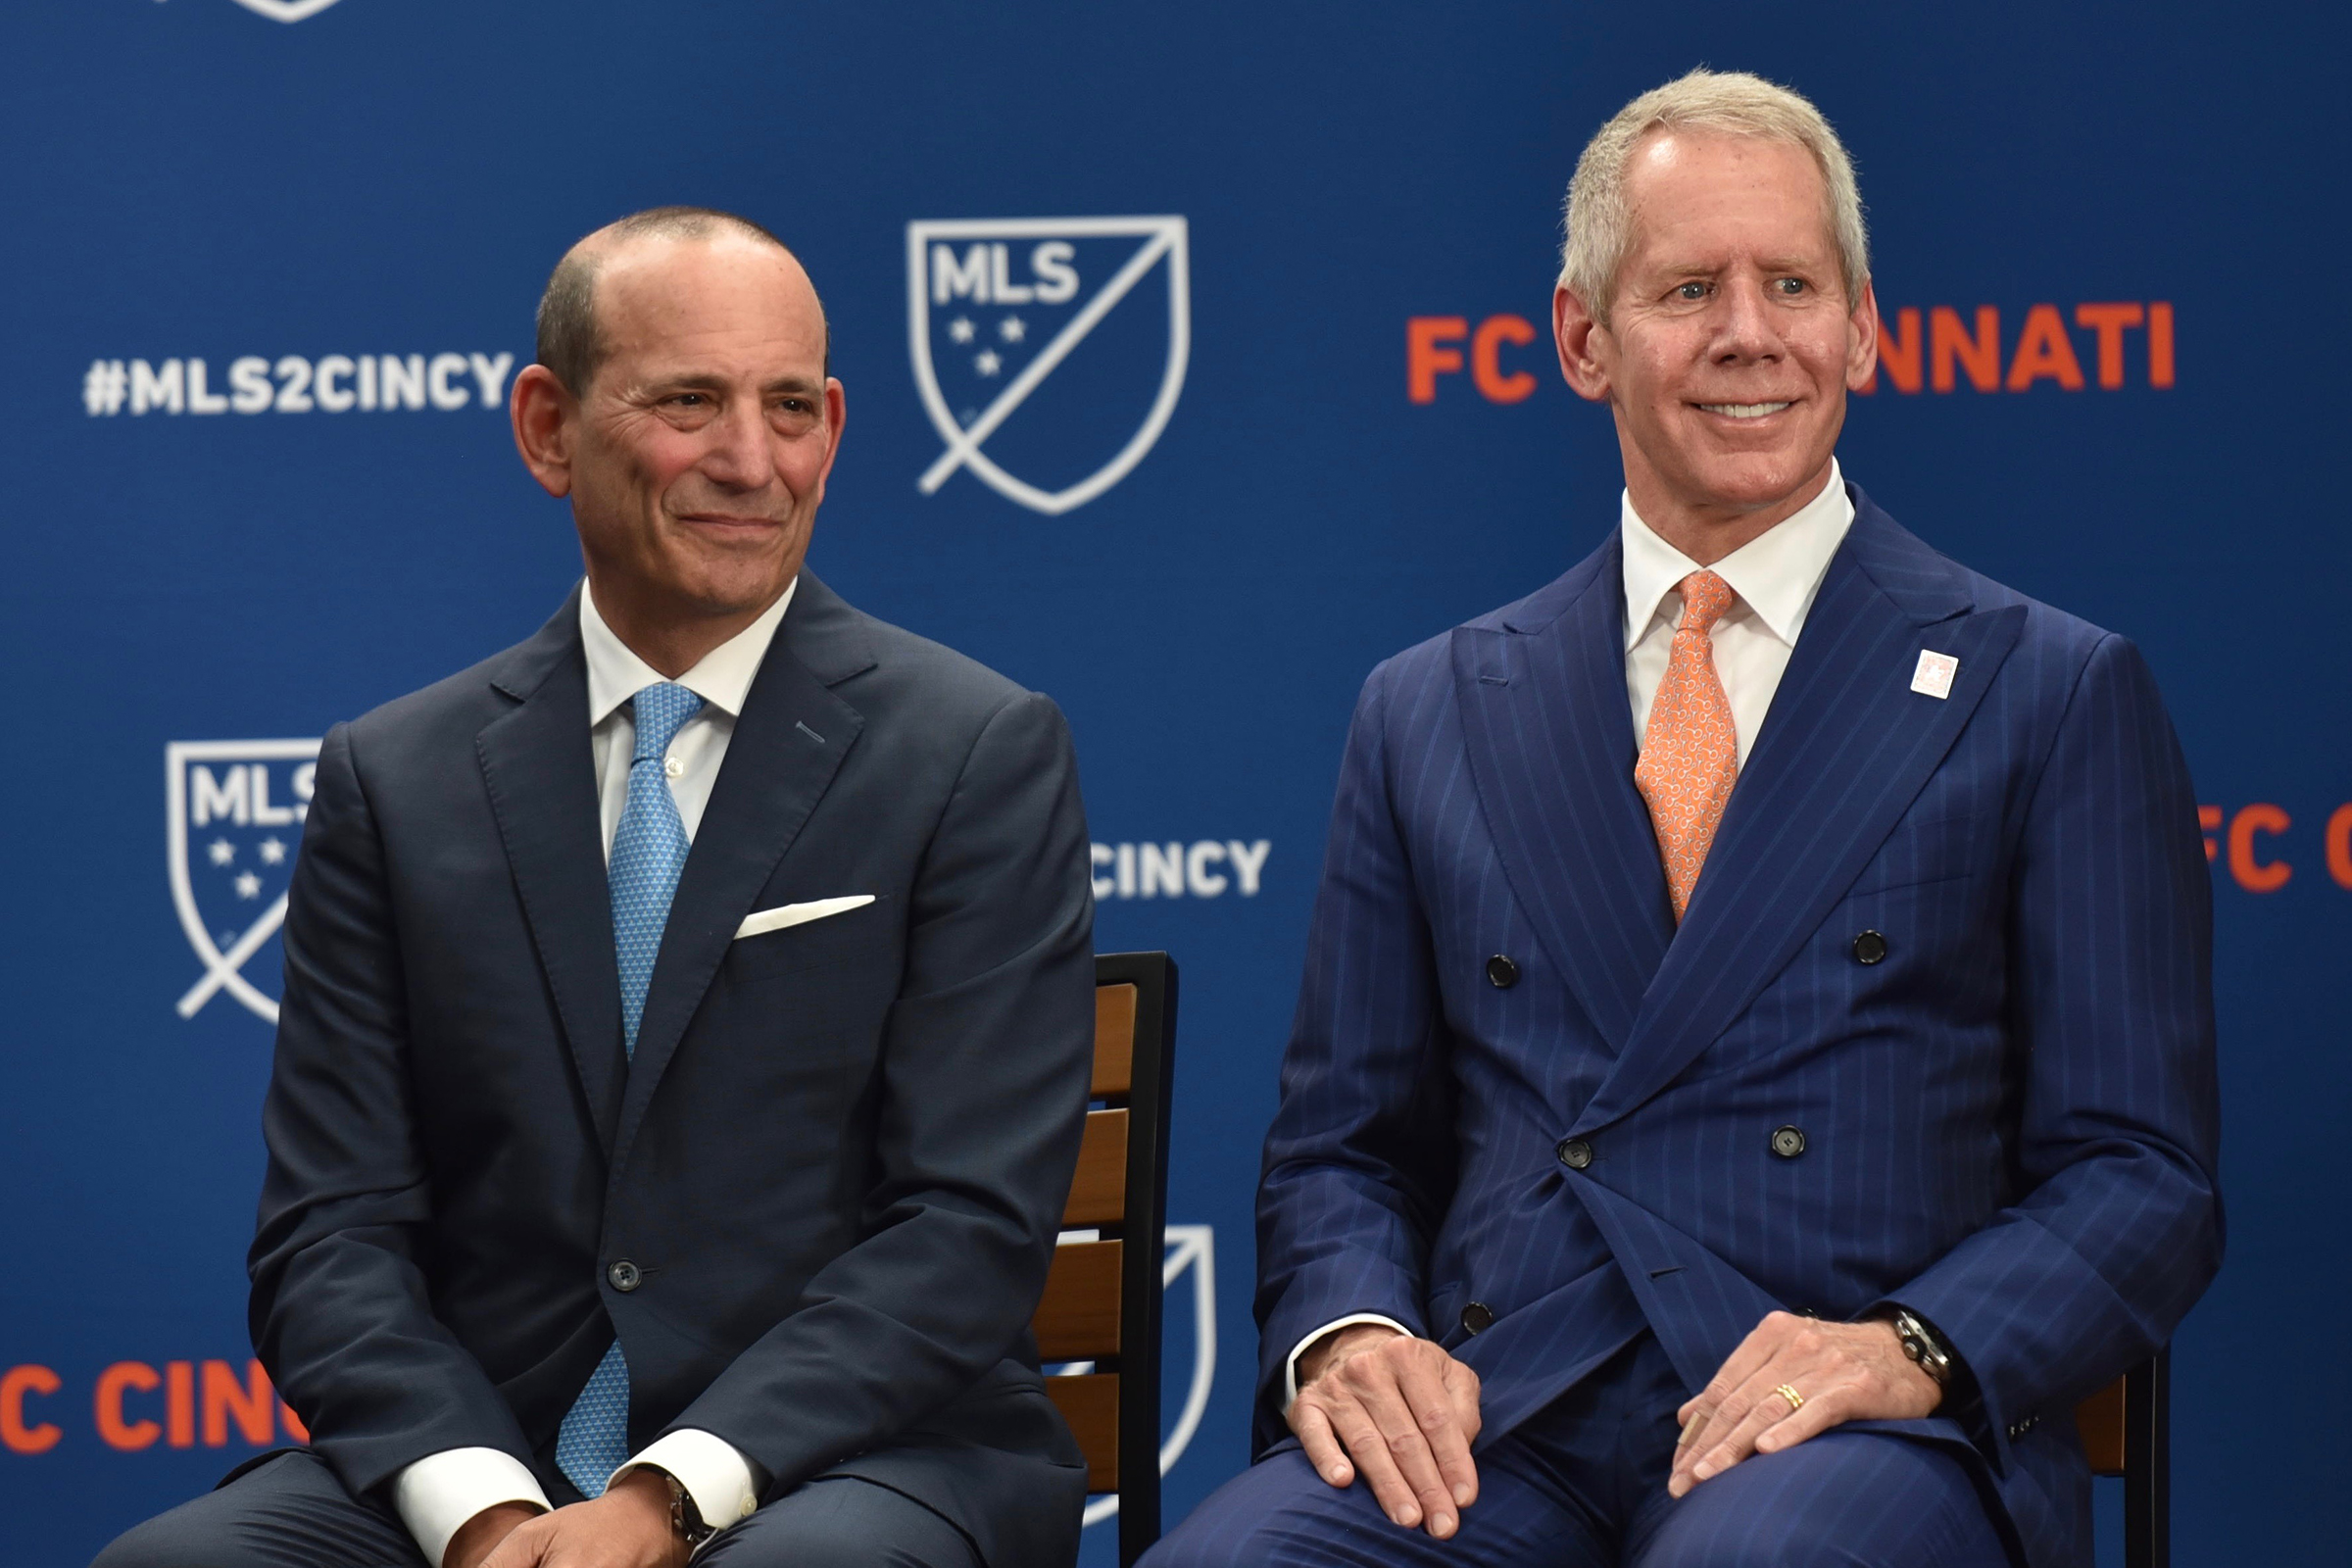 847b45e9f0948 Here's what to watch for in Friday's MLS SuperDraft, with FC Cincinnati  holding 10 total picks over the draft's four rounds.